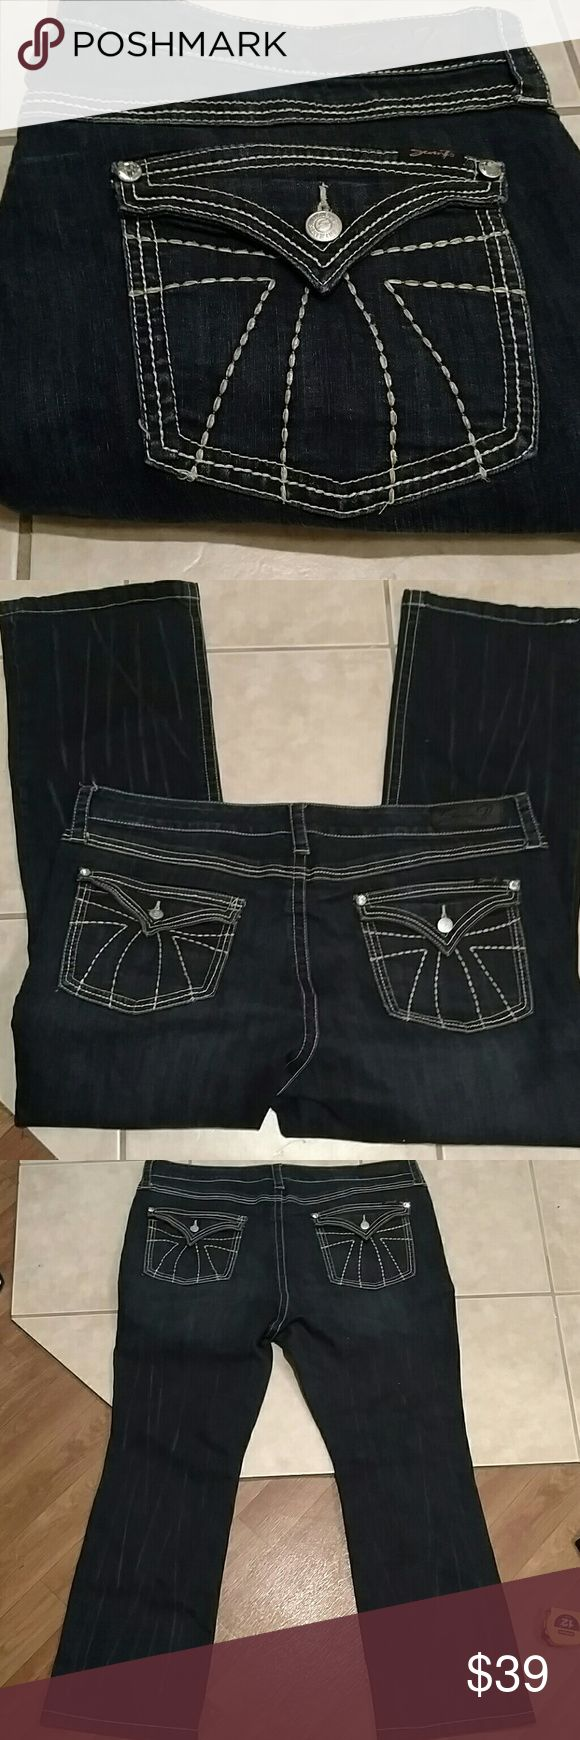 Seven jeans plus size Sale.  1 hr Perfect pair of plus size 22 jeans in like new condition. Beautiful back pockets with beautiful white threading throughout. Inseam is 31 inches with a rise of 11 inches. Waist flat measures 22 inches. These are the luxe version. 99% cotton 1% Spandex Seven7 Jeans Boot Cut